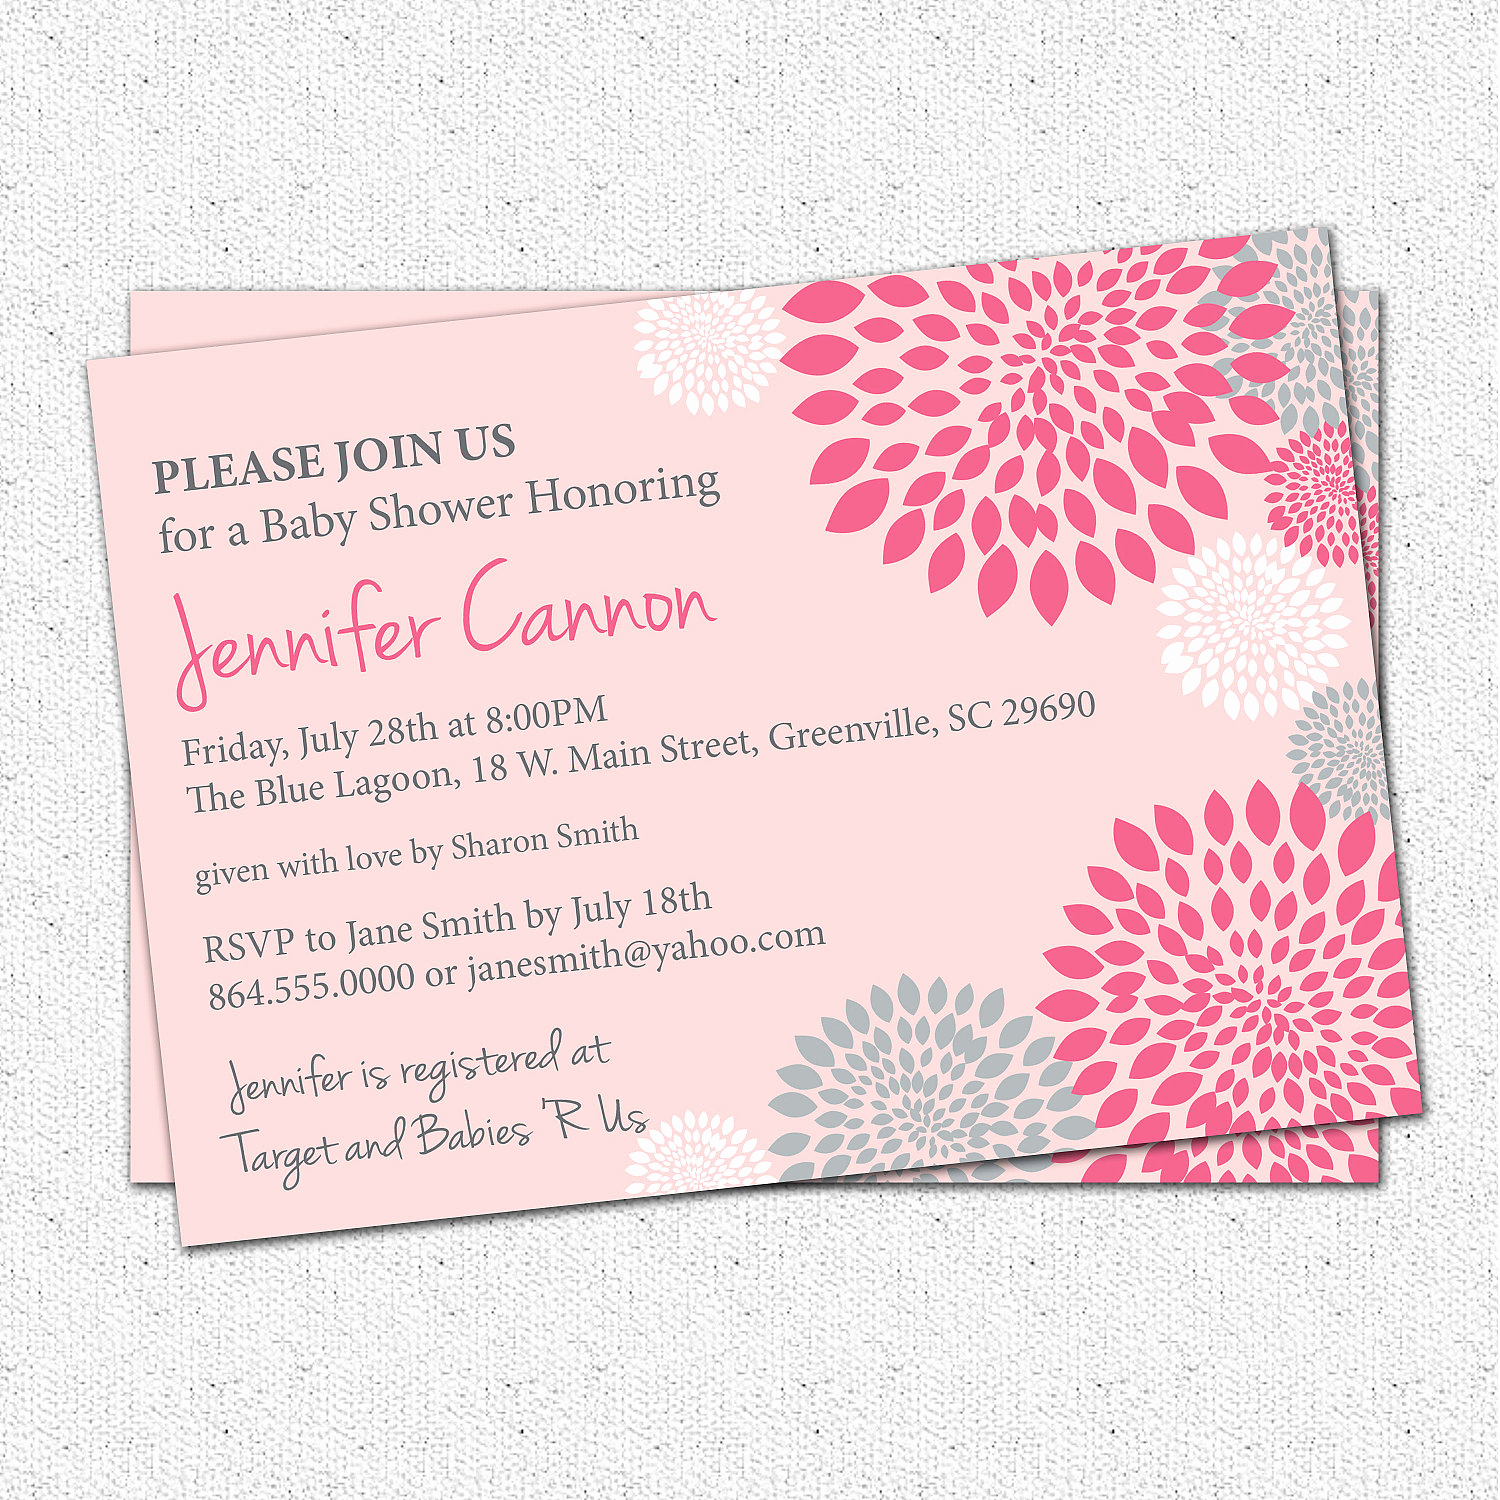 Girl Baby Shower Invitation Beautiful Baby Shower Invitations Girl White Hot and Pale Pink